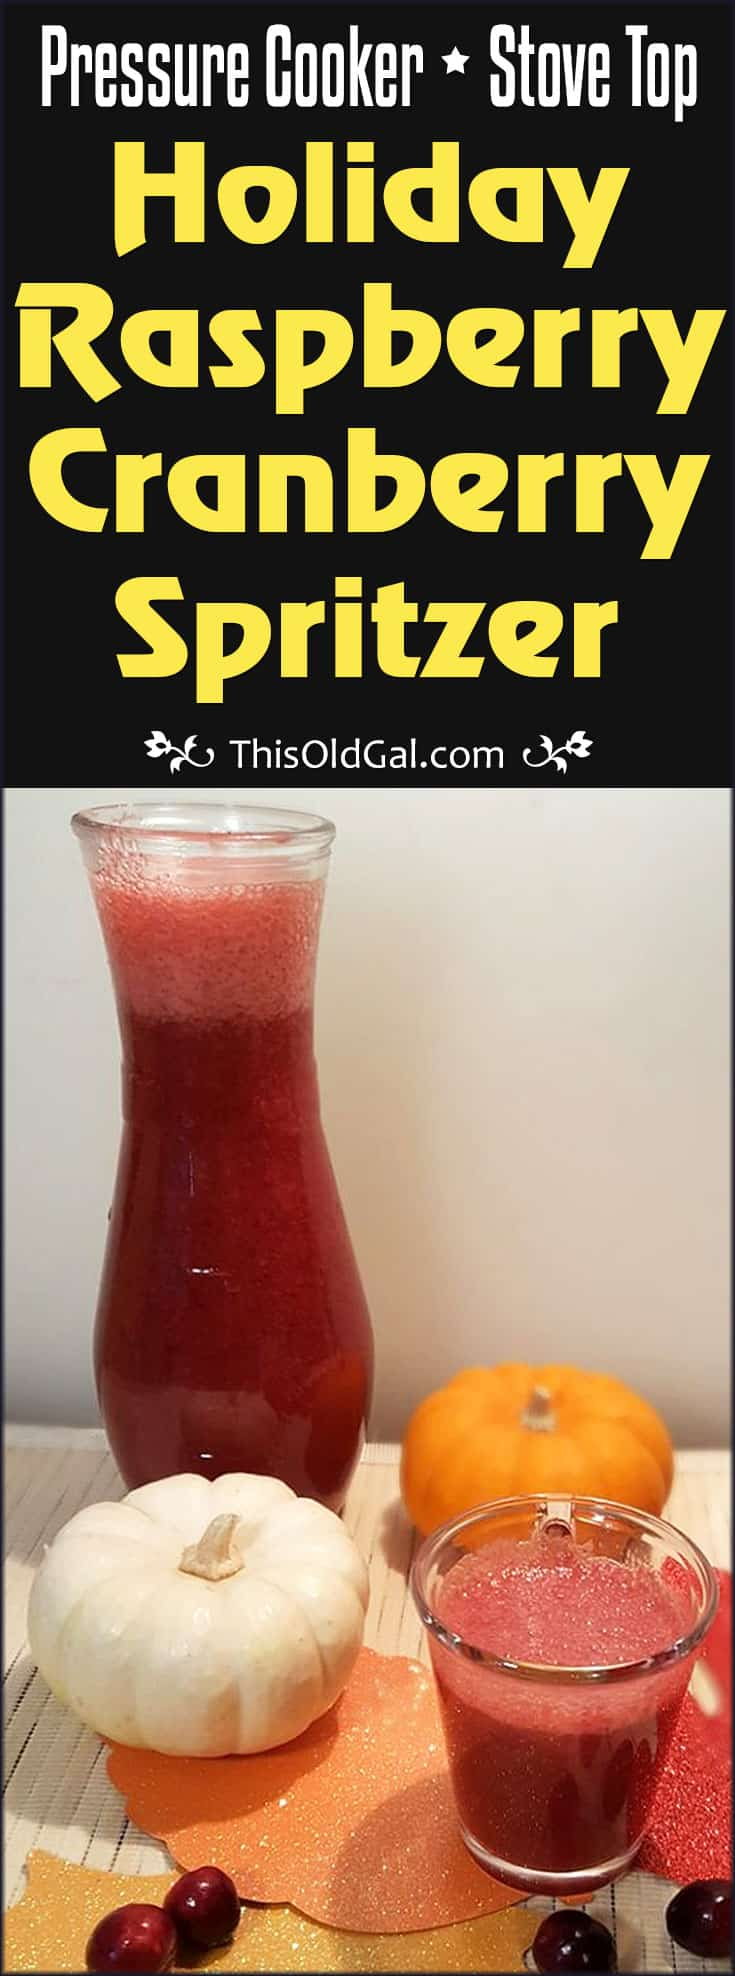 Holiday Raspberry Cranberry Spritzer